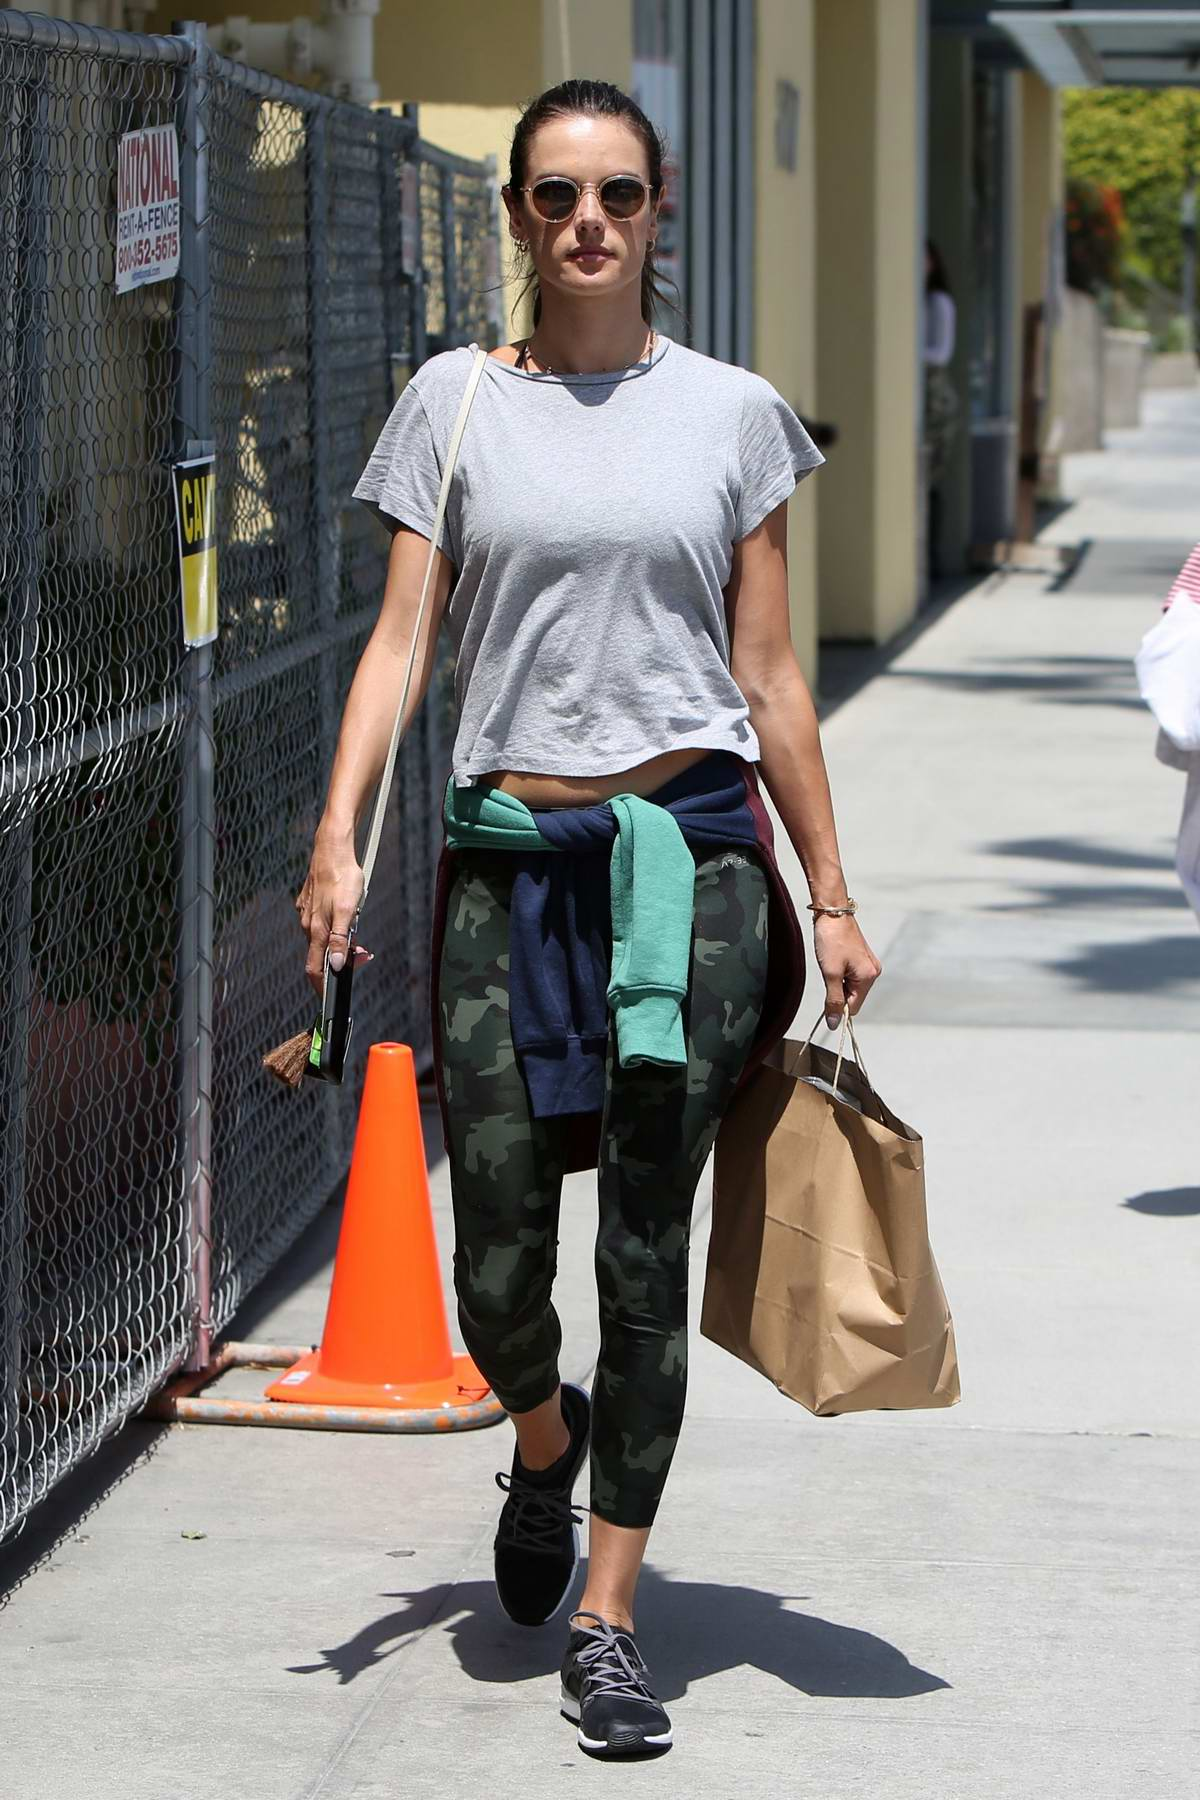 Alessandra Ambrosio rocks a grey top and Camo leggings while out for lunch with her daughter in Brentwood, Los Angeles